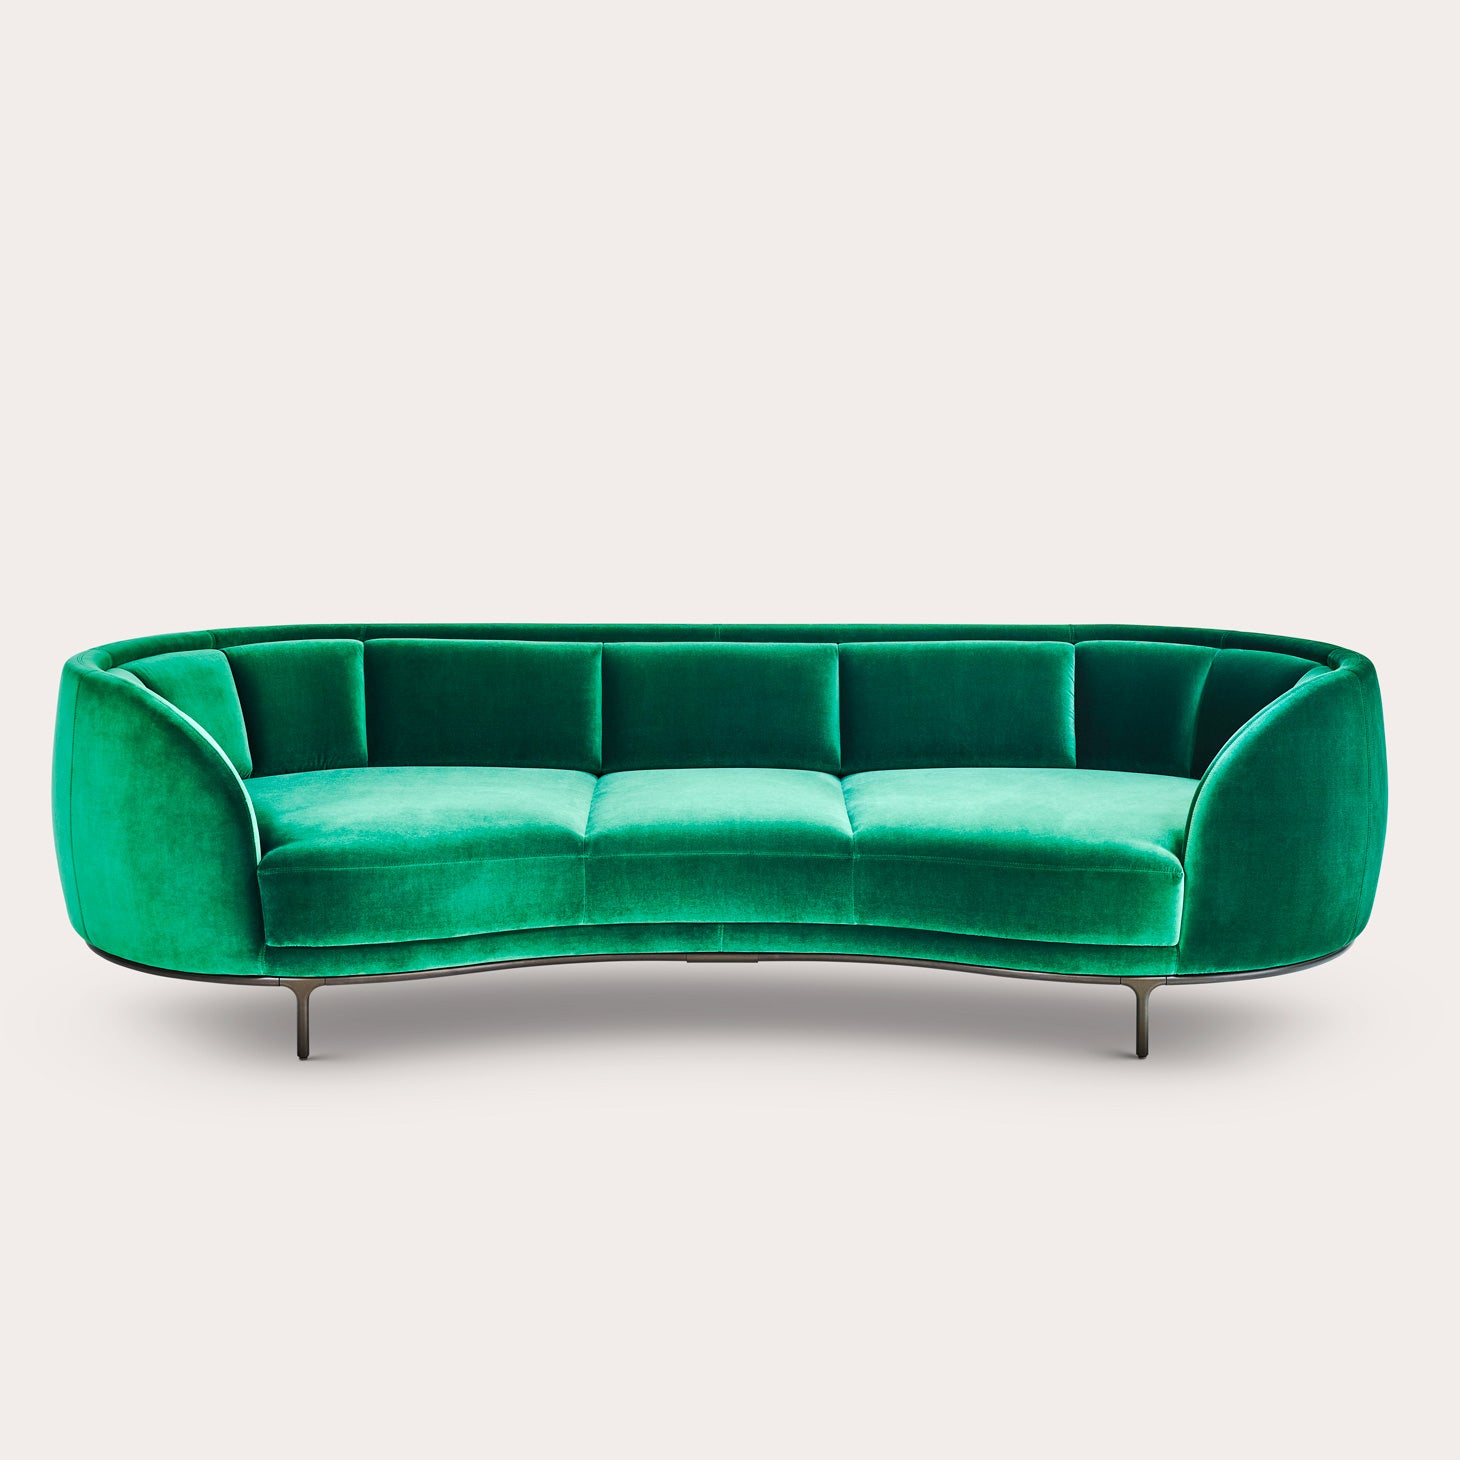 Vuelta Lounge Island Sofa Seating Jaime Hayon Designer Furniture Sku: 758-240-10269